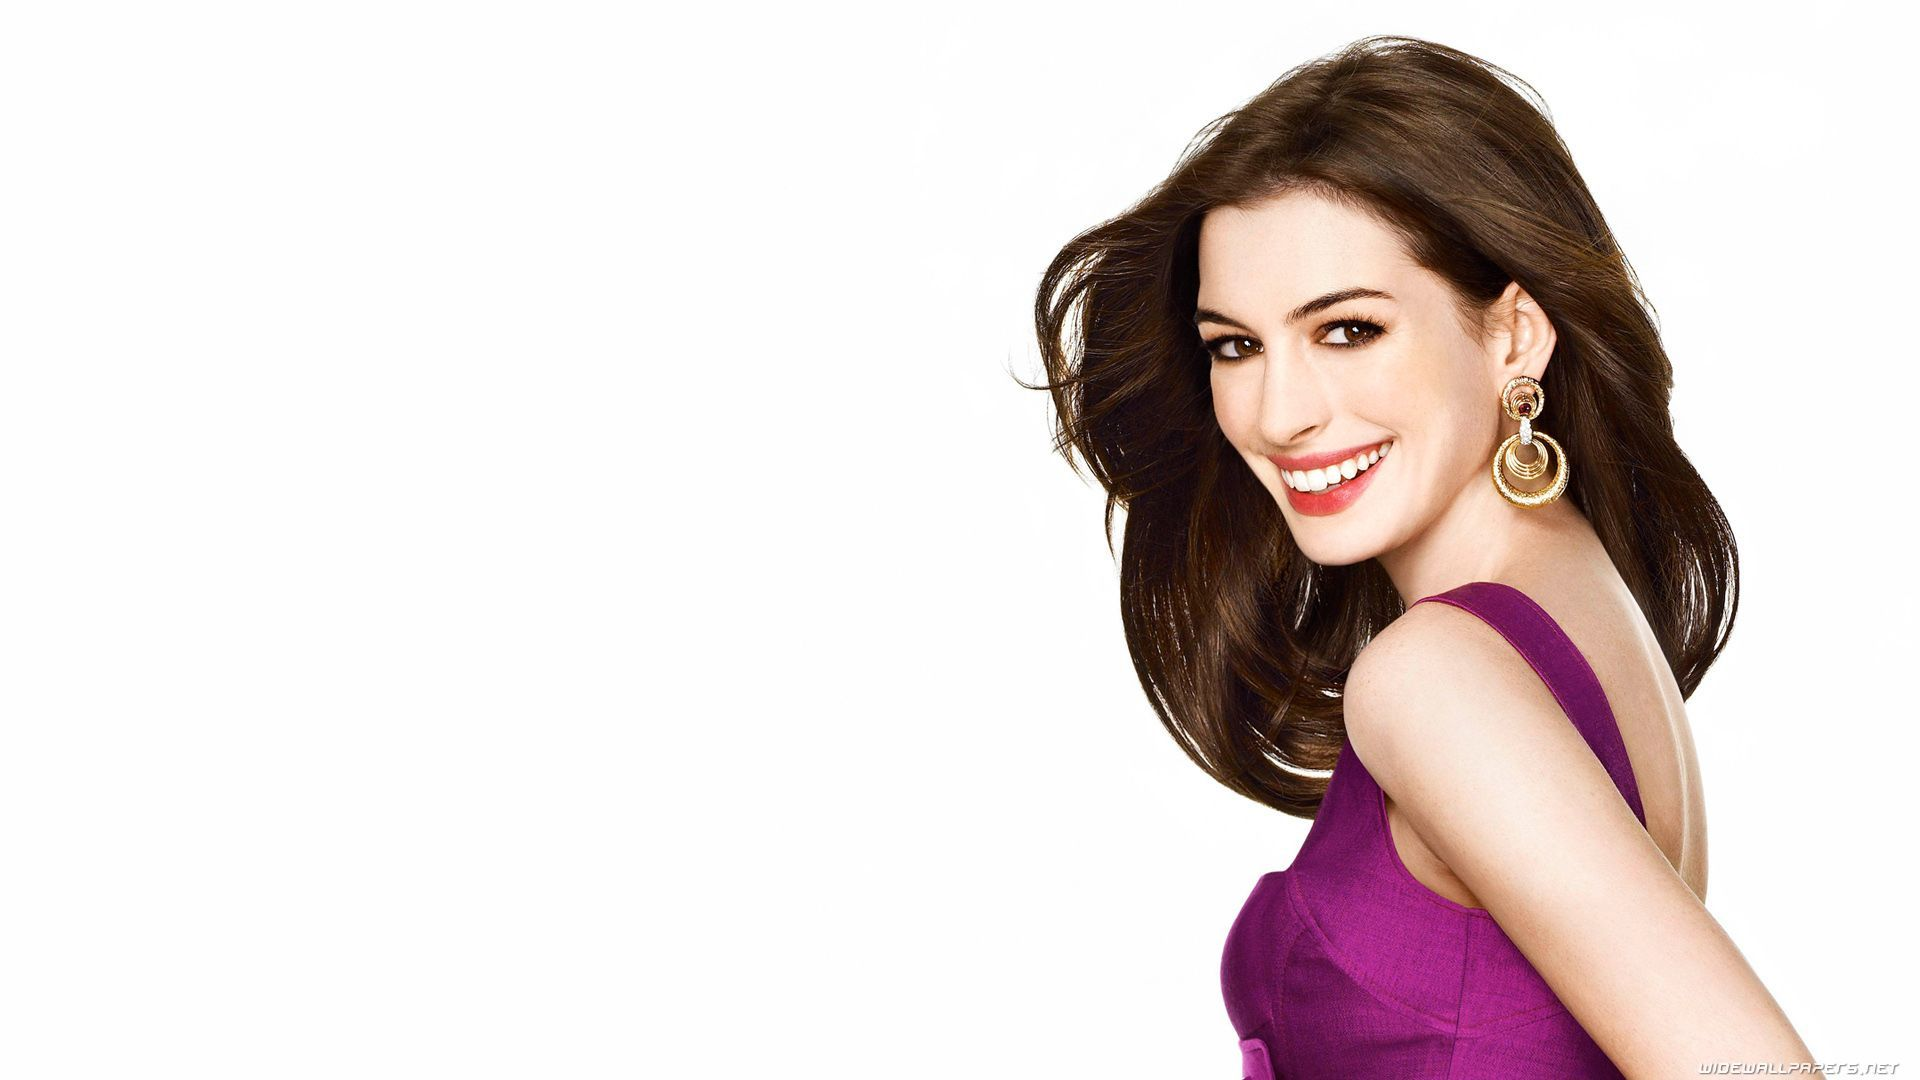 Anne Hathaway Hd Wallpapers X